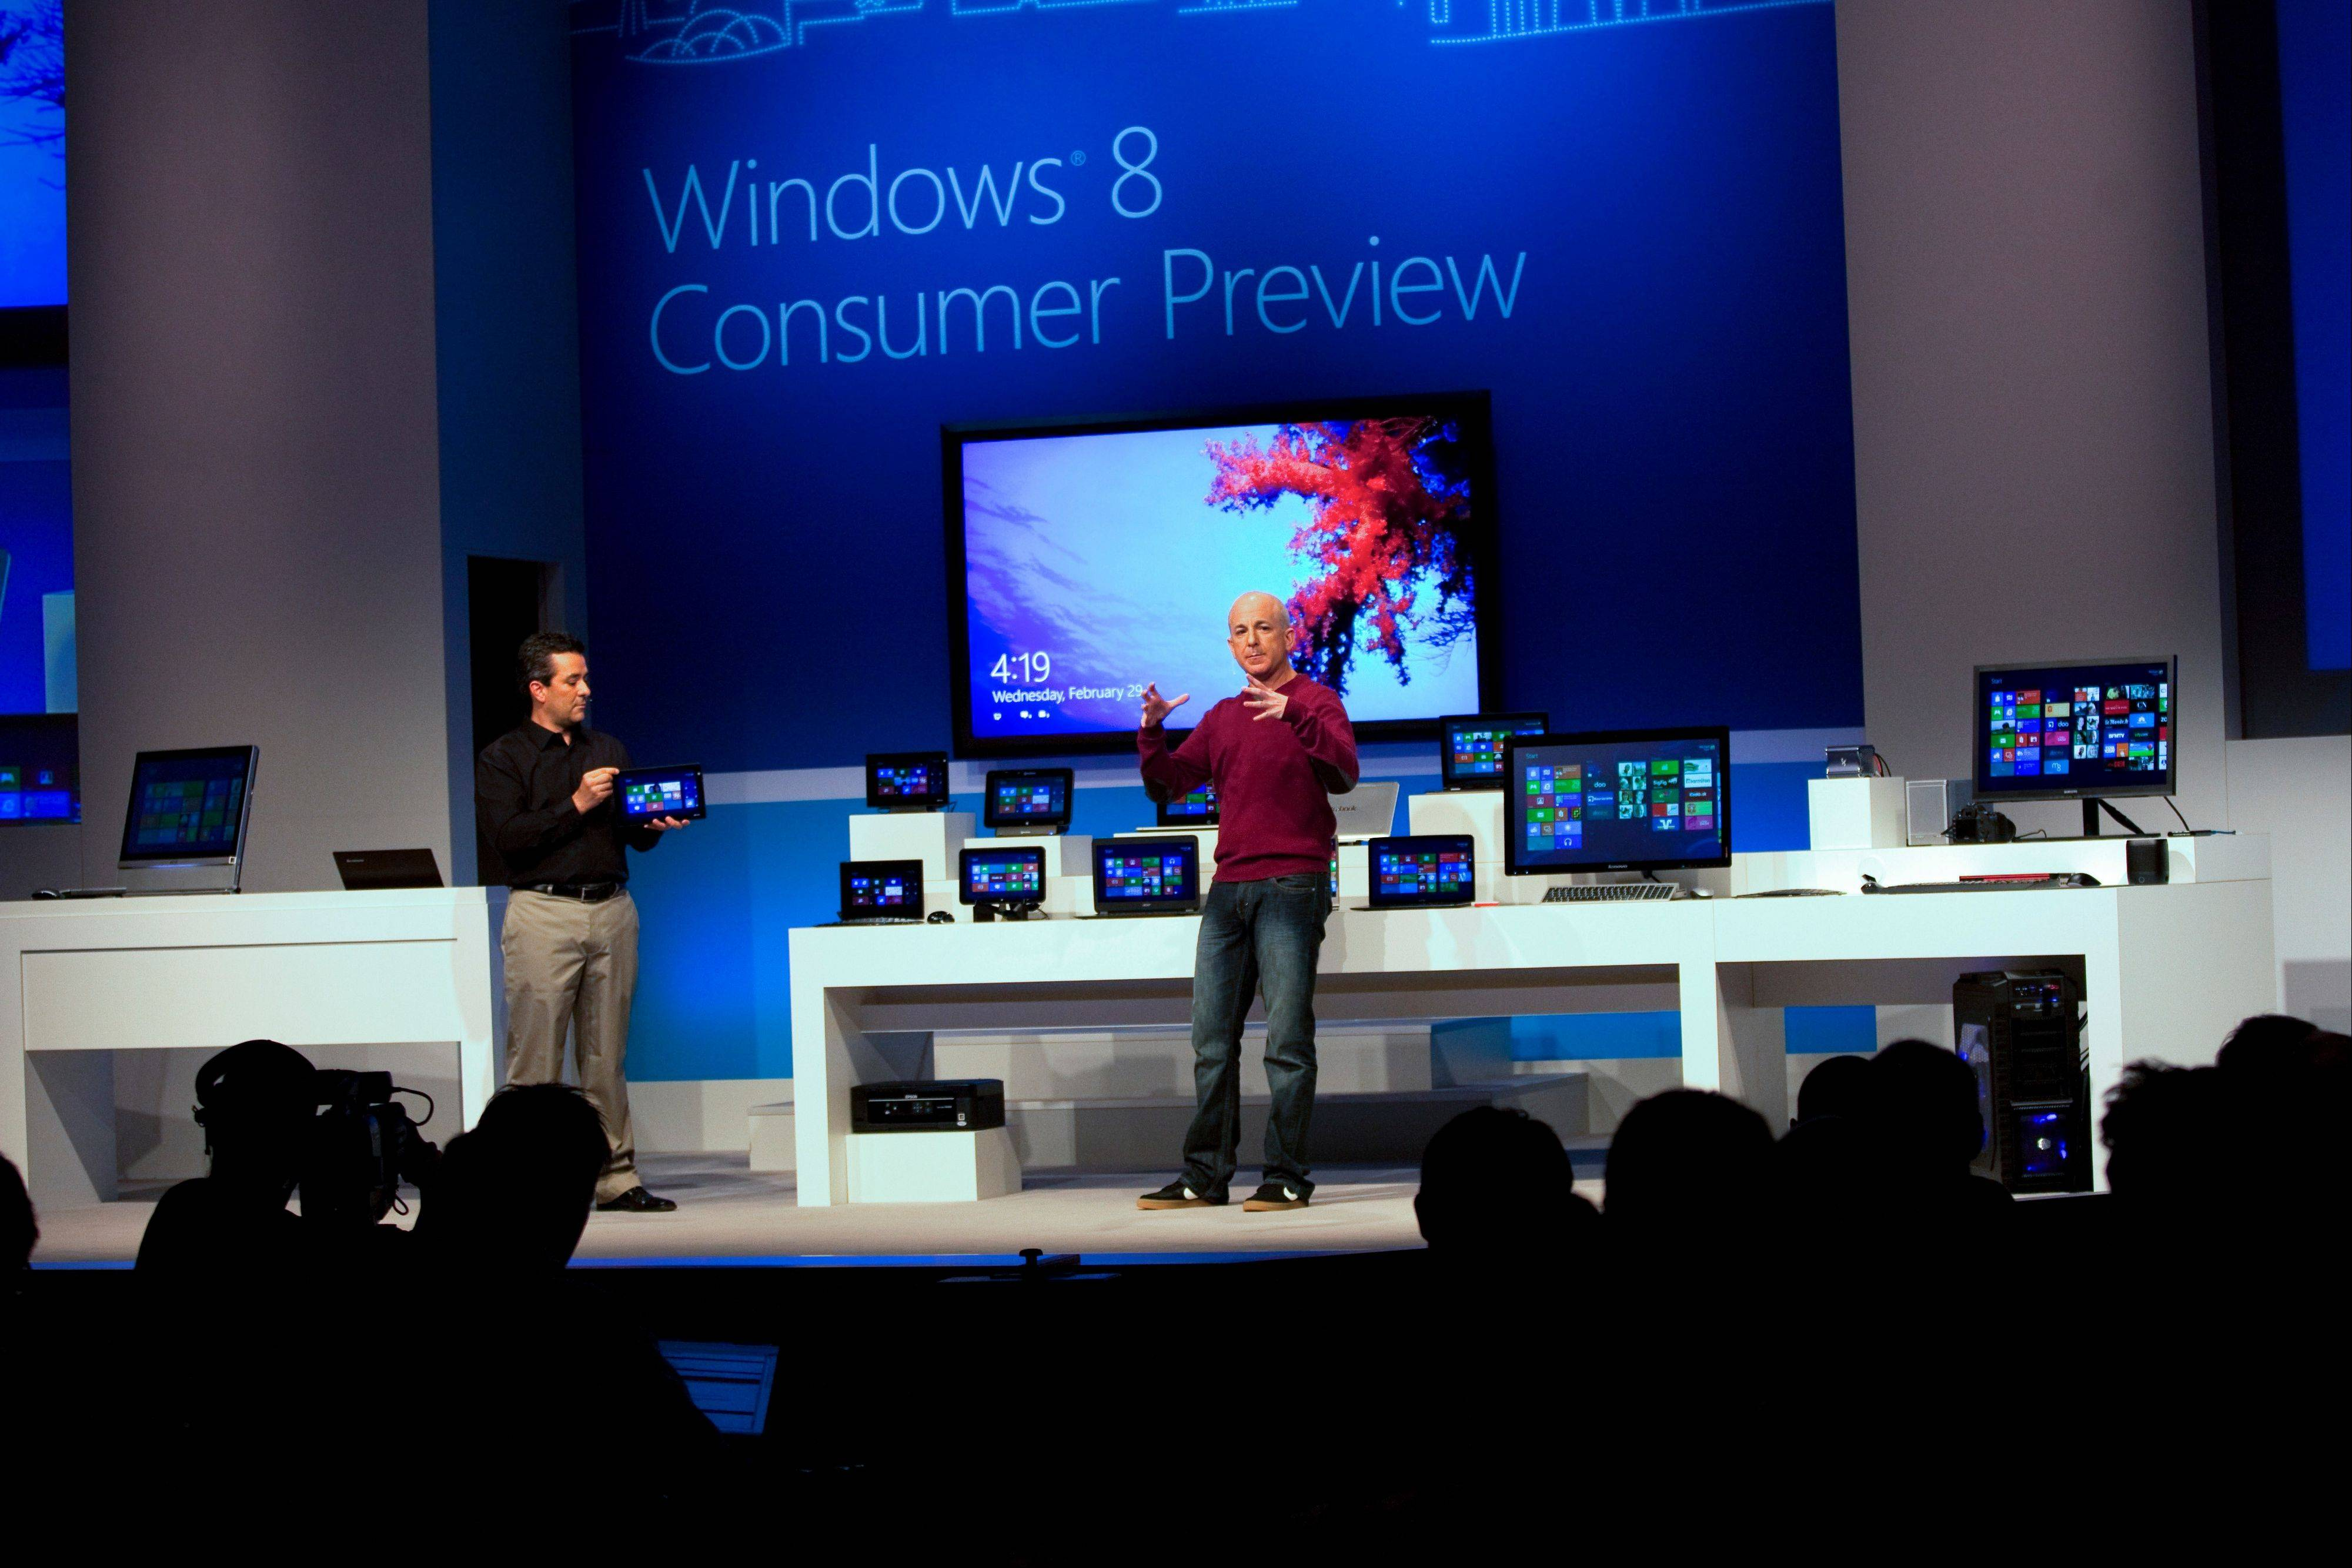 Steven Sinofsky, president of Windows and Windows Live, attends the Windows 8 Consumer Preview presentation at the Mobile World Congress in Barcelona, Spain, last February.